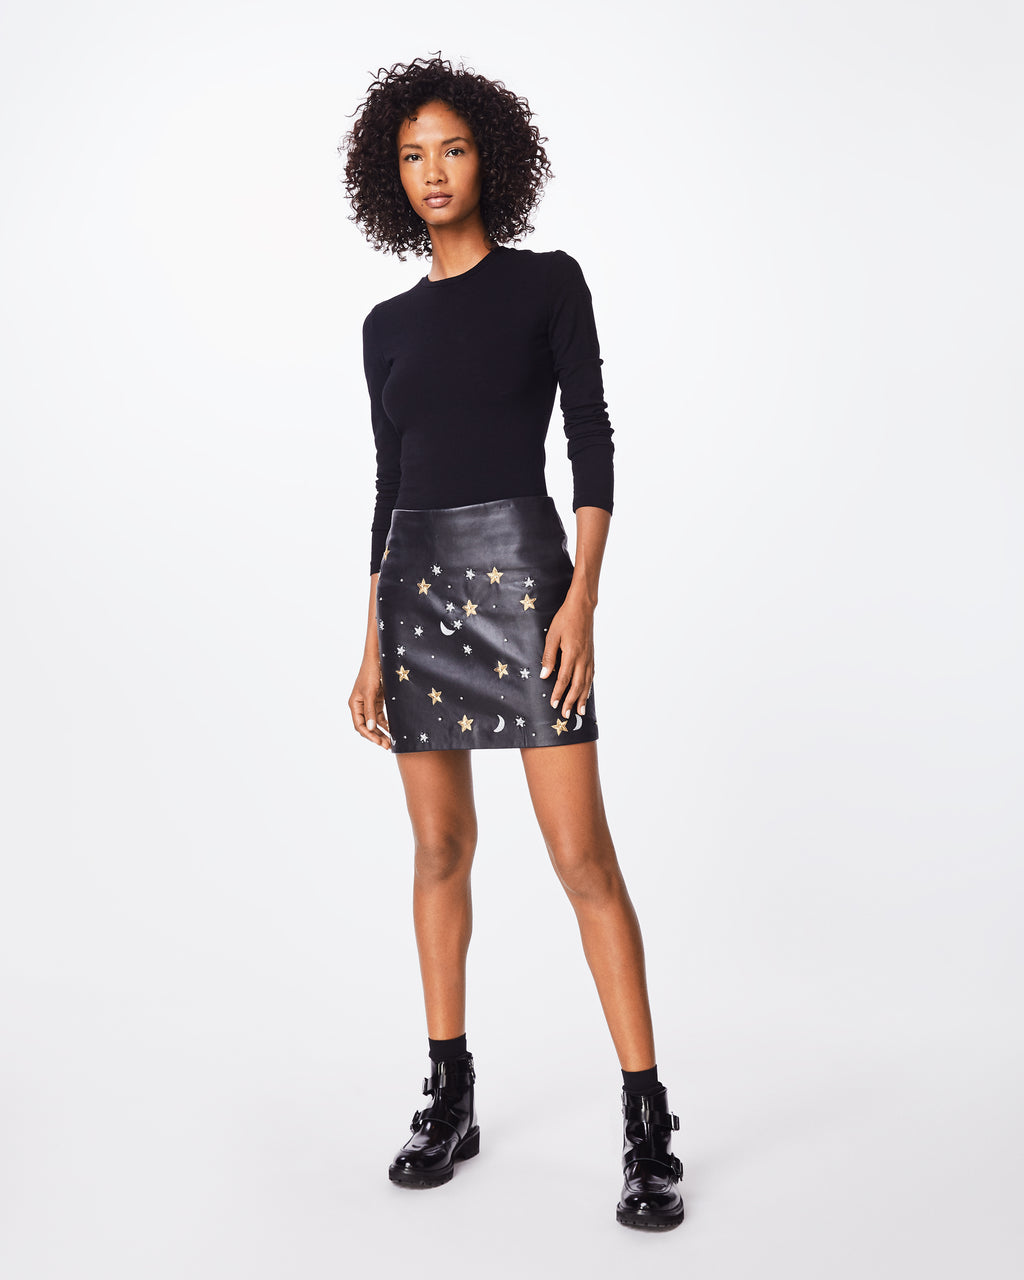 CF10268 - STARRY NIGHT EMBELLISHED MINI SKIRT - bottoms - skirts - This sheep leather mini skirt is finished with embellished silver and gold stars throughout. Exposed back zipper for closure.